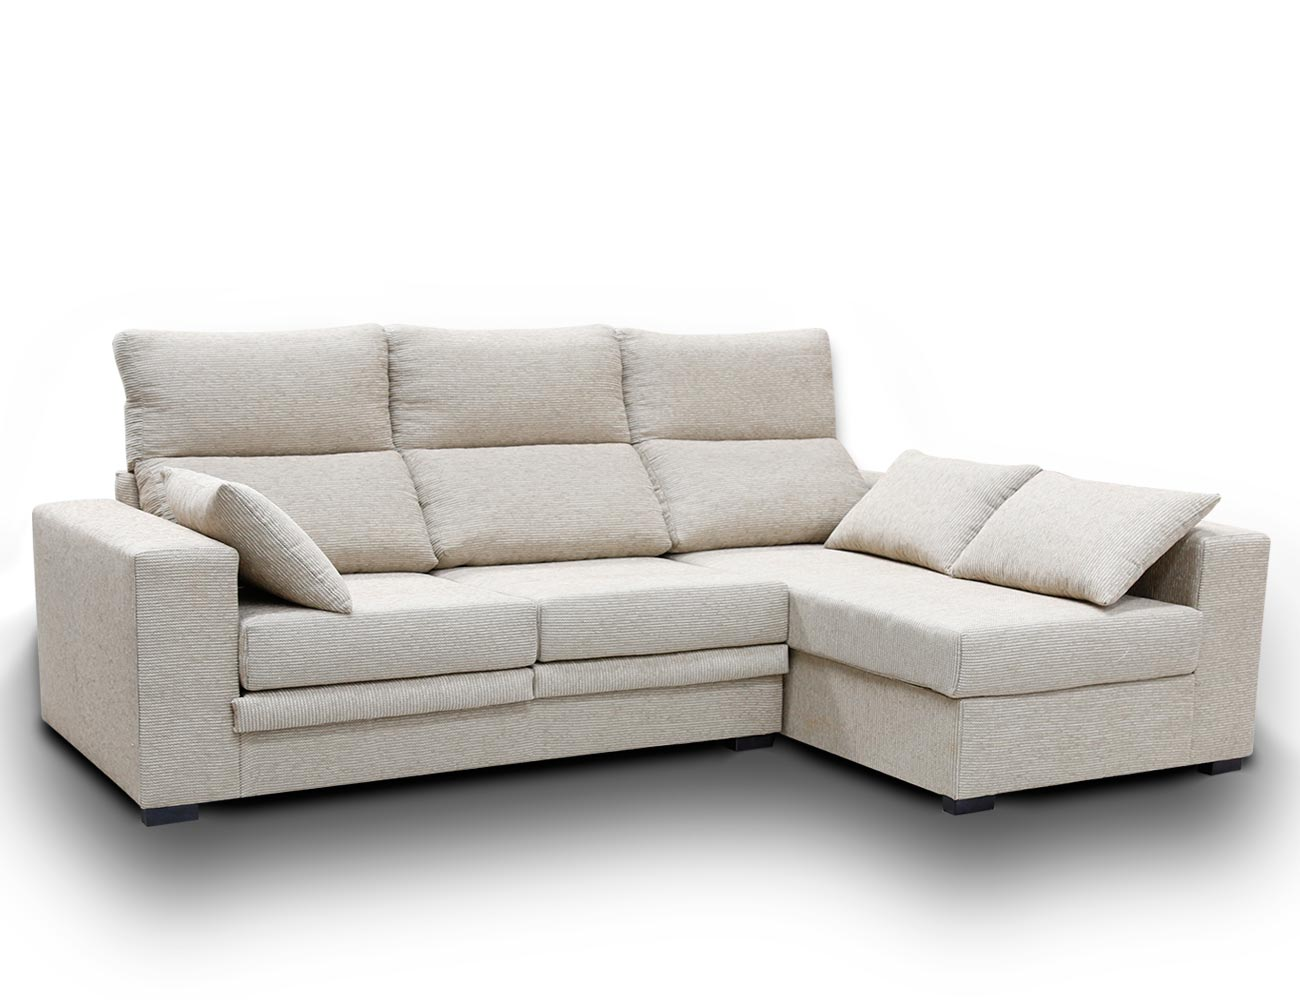 Sofa chaiselongue pardo 1